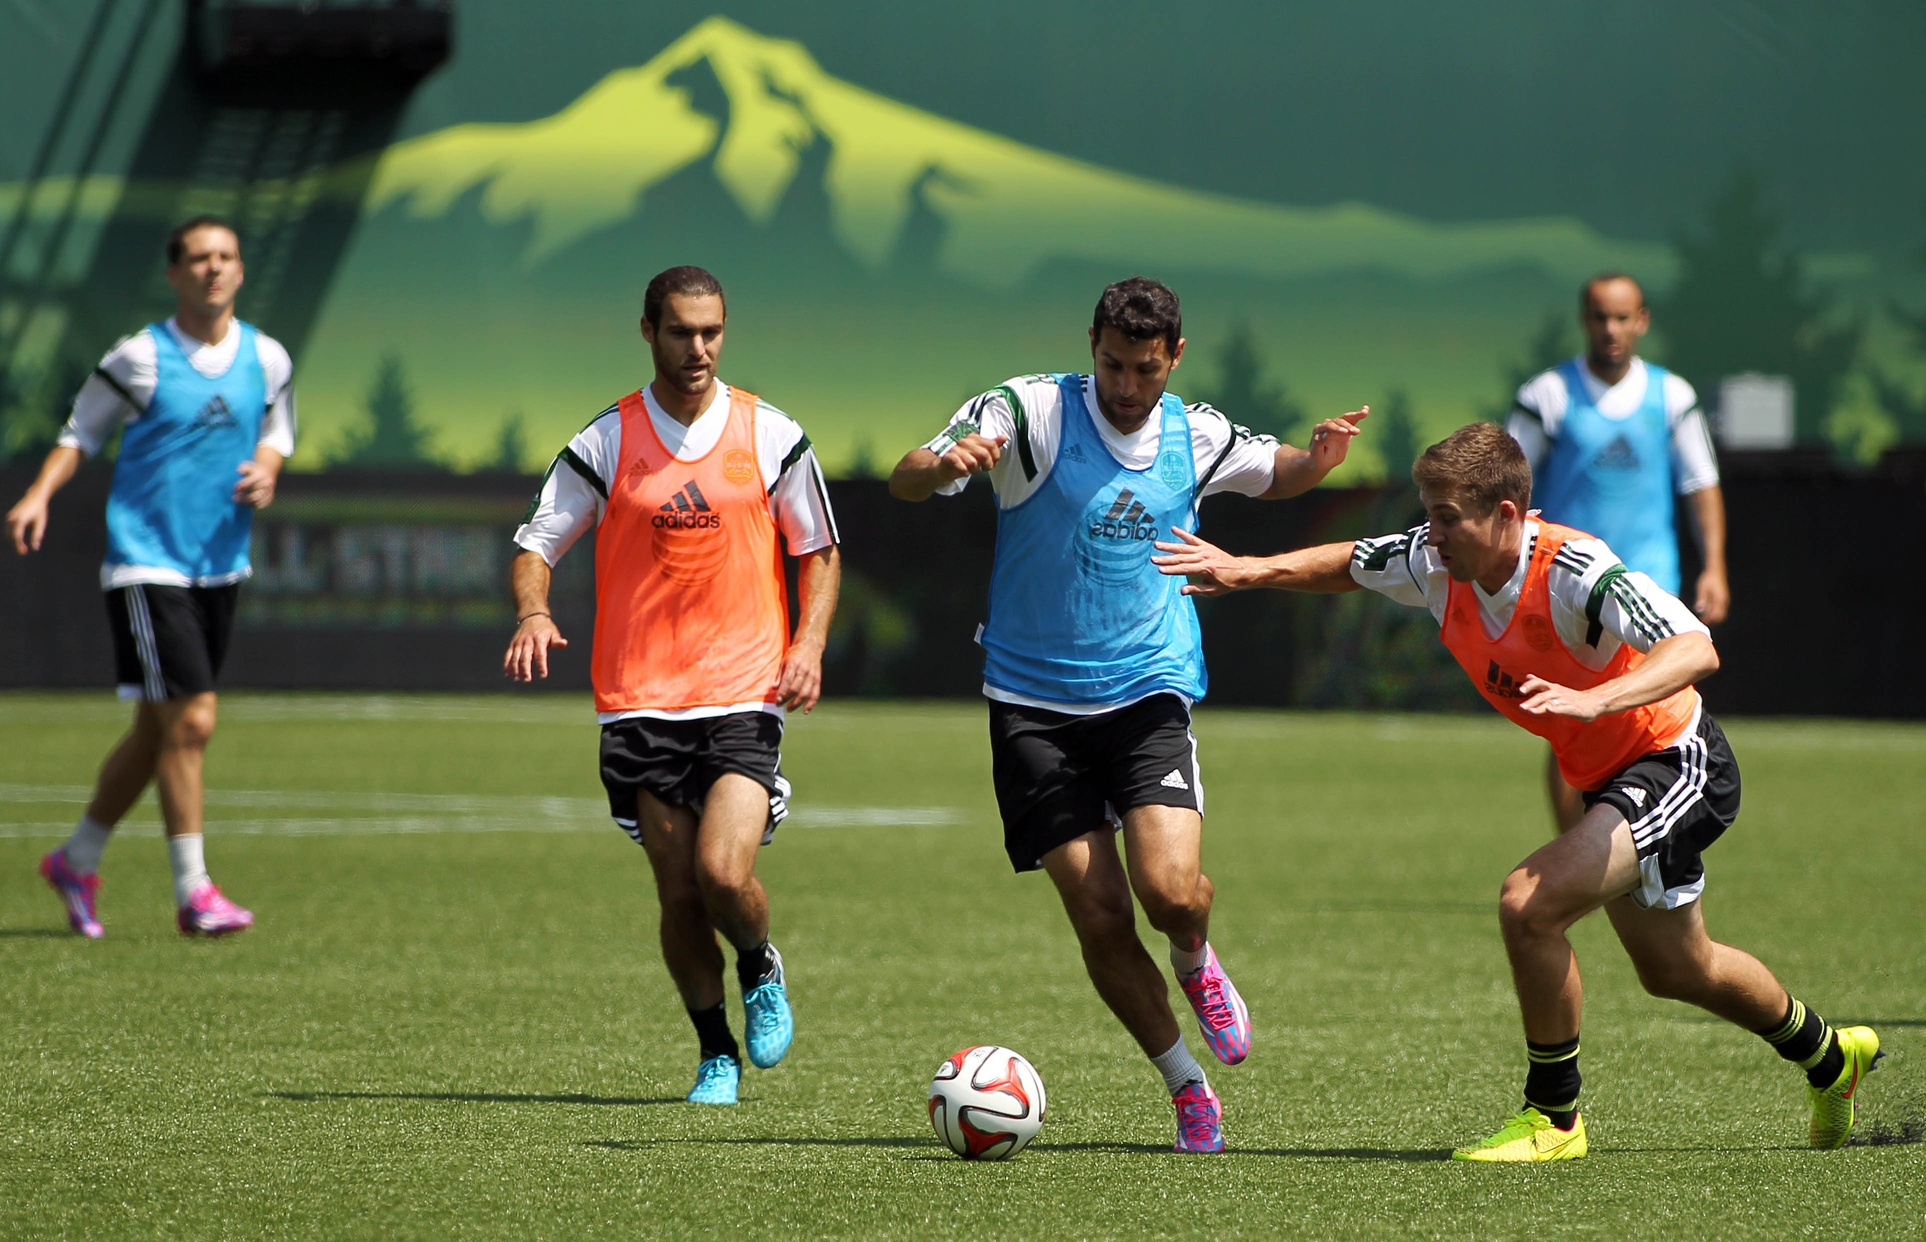 mls-all-star-game-training